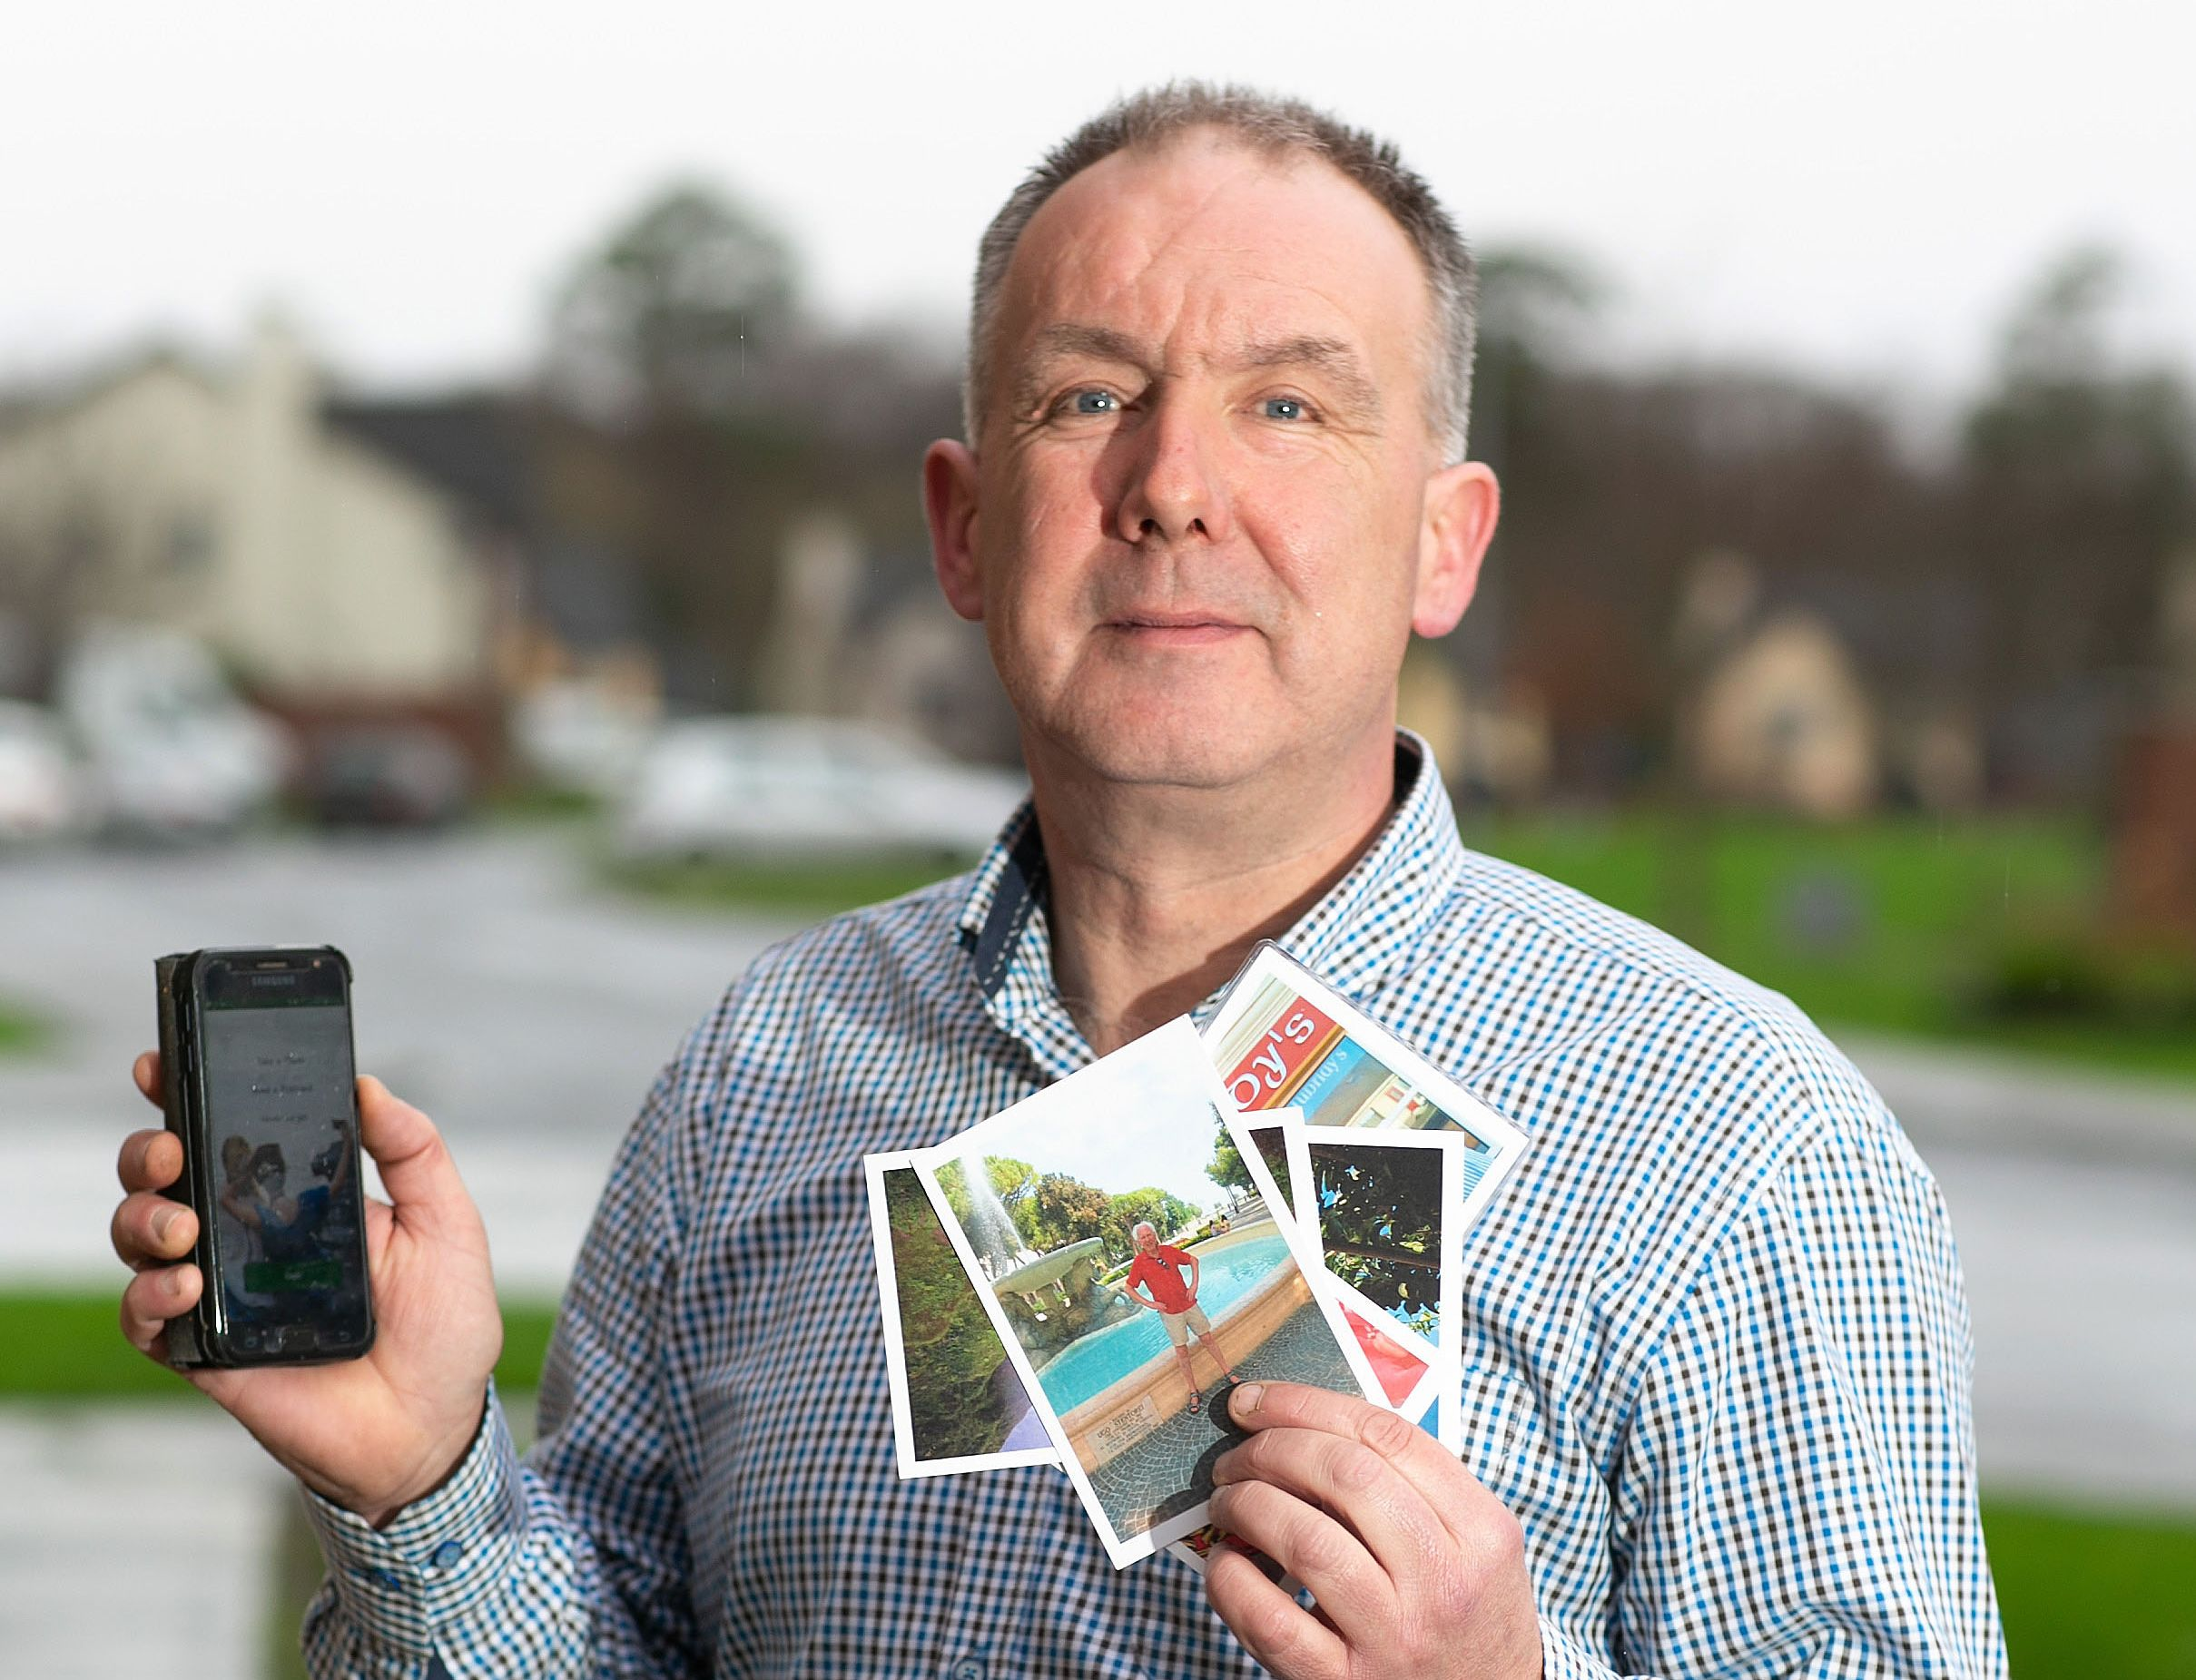 Postcards rescued from oblivion by clever Irish PostASelfie app